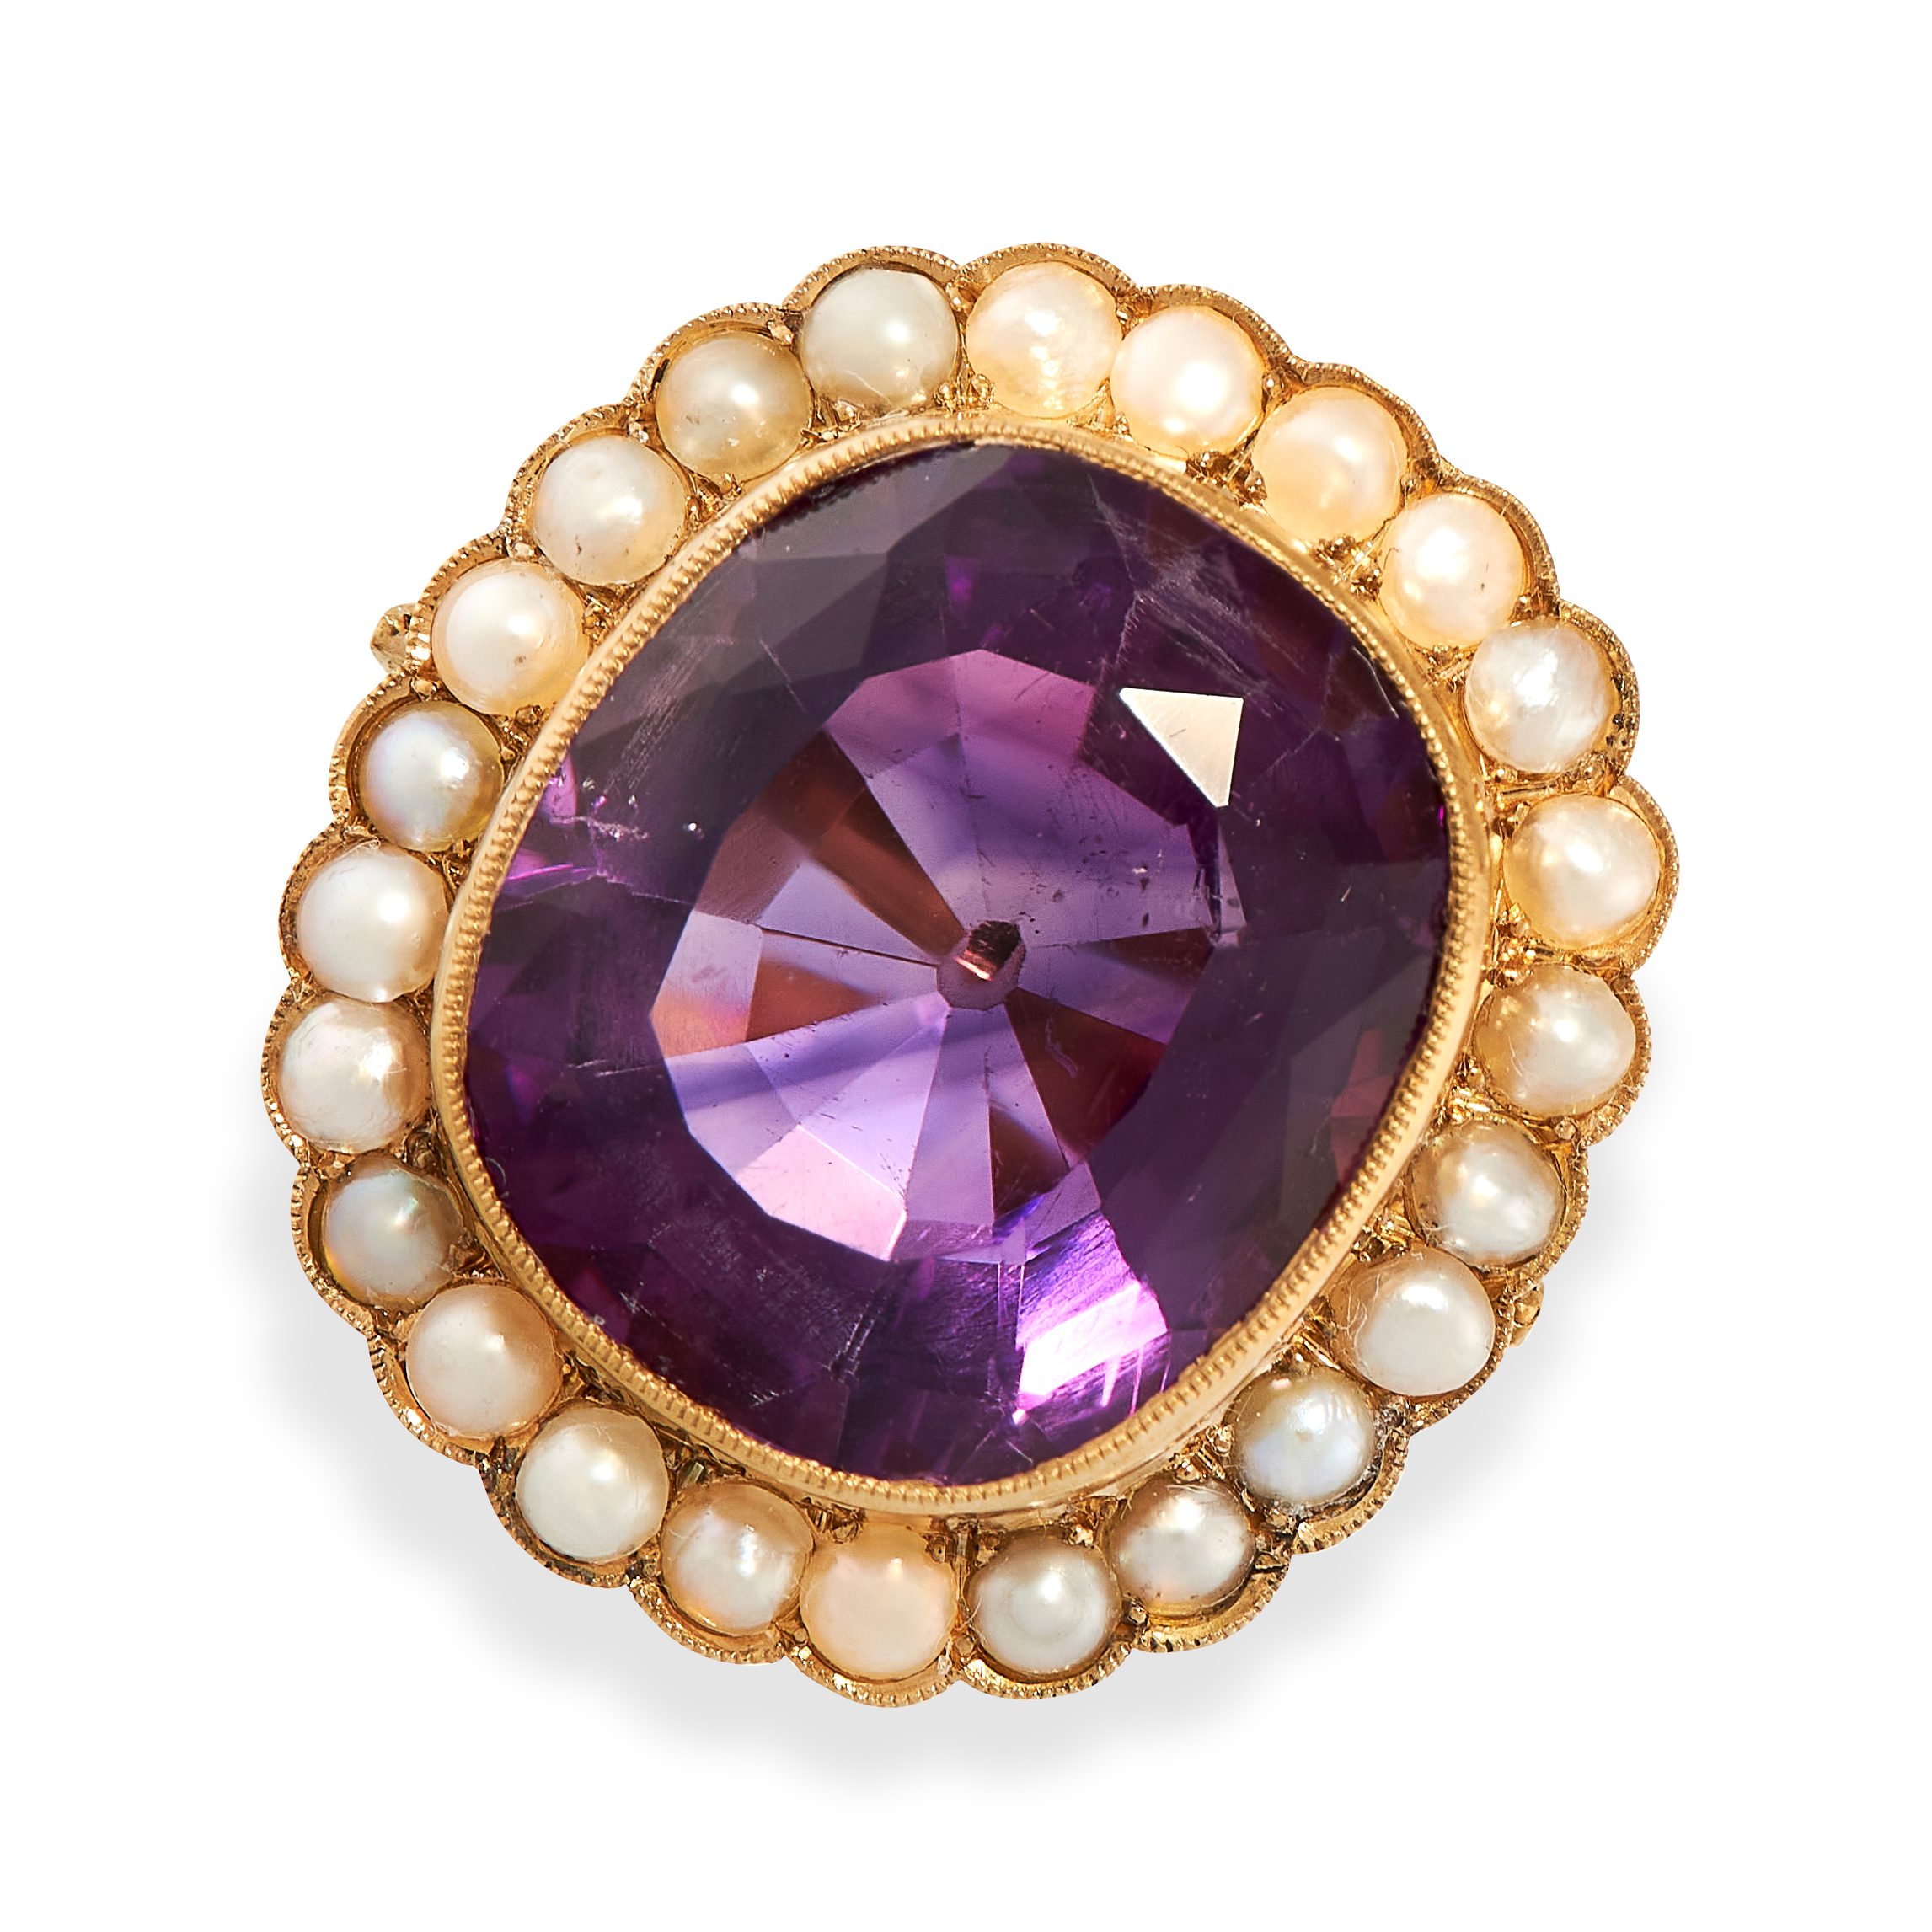 AN ANTIQUE AMETHYST AND PEARL RING, 19TH CENTURY AND LATER in yellow gold, set with a large